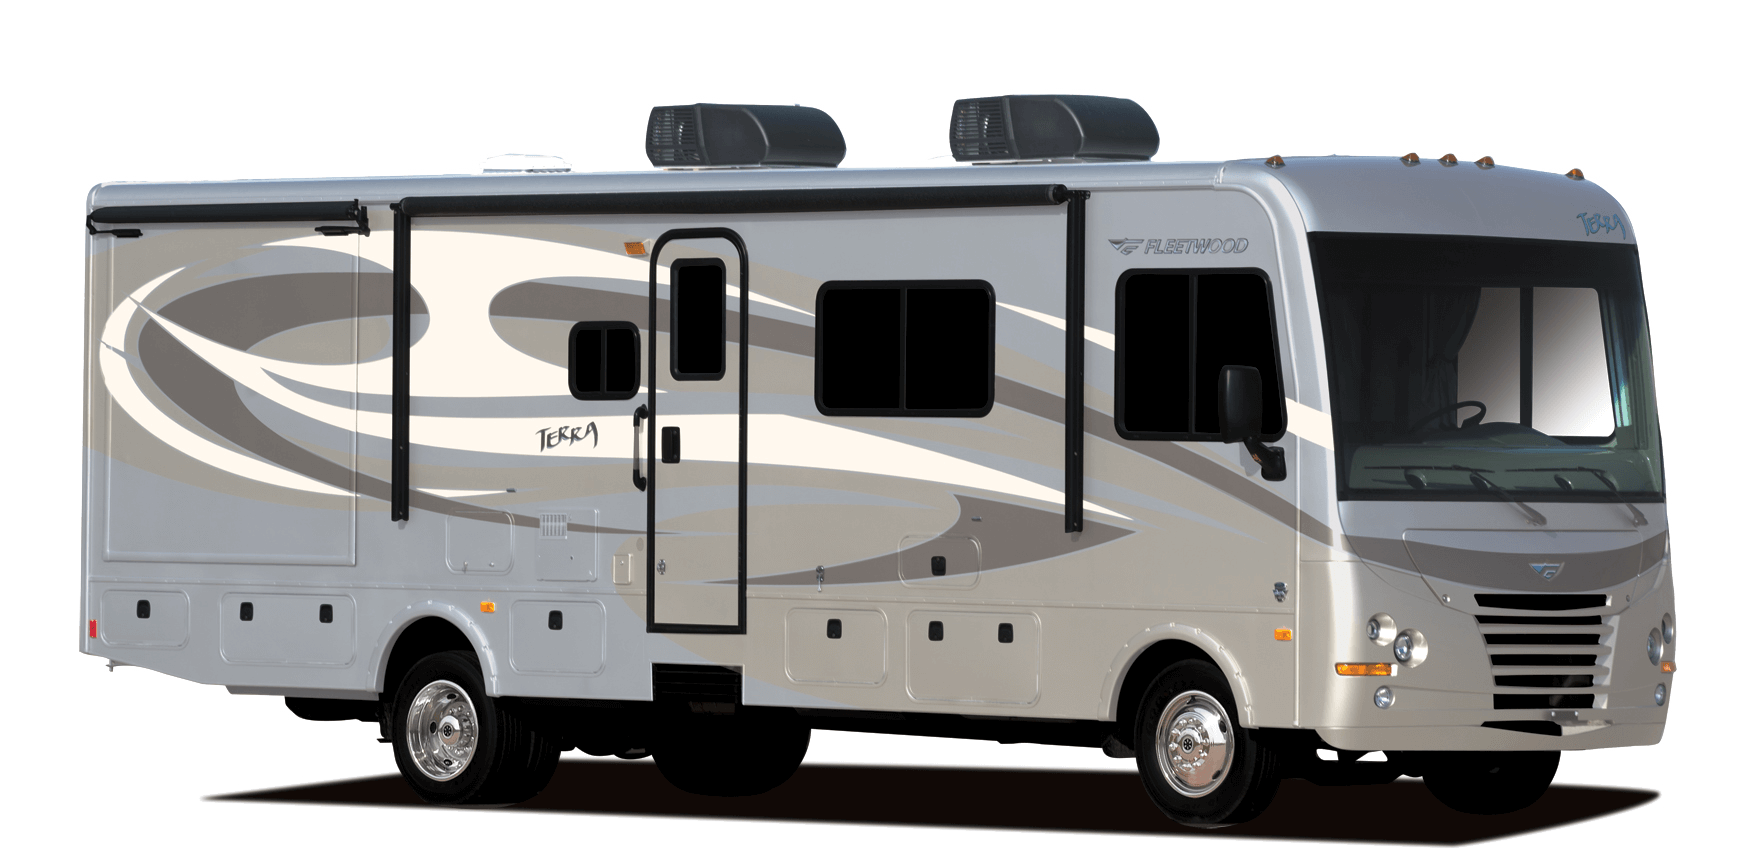 Fleetwood Terra Class A Motorhome General Rv Center